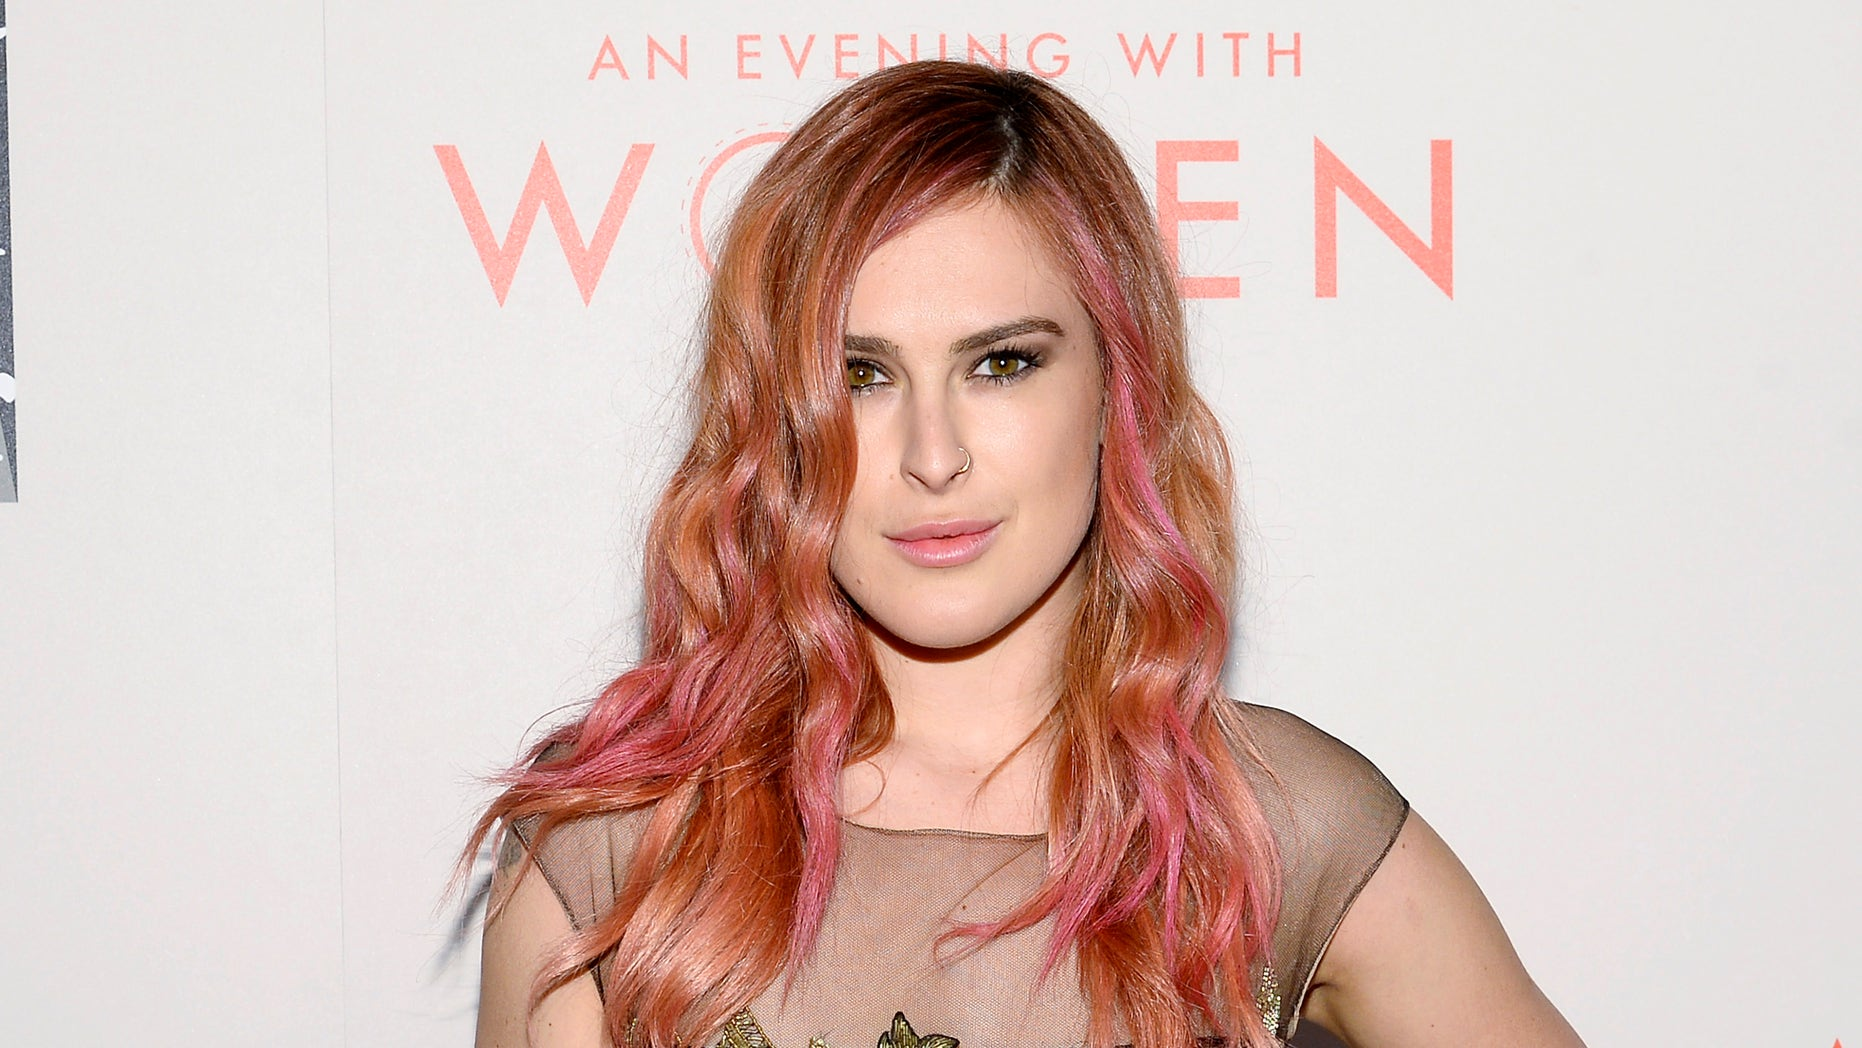 """May 10, 2014. Actress Rumer Willis arrives for the L.A. Gay & Lesbian Center's Annual """"An Evening With Women"""" event in Beverly Hills, California."""